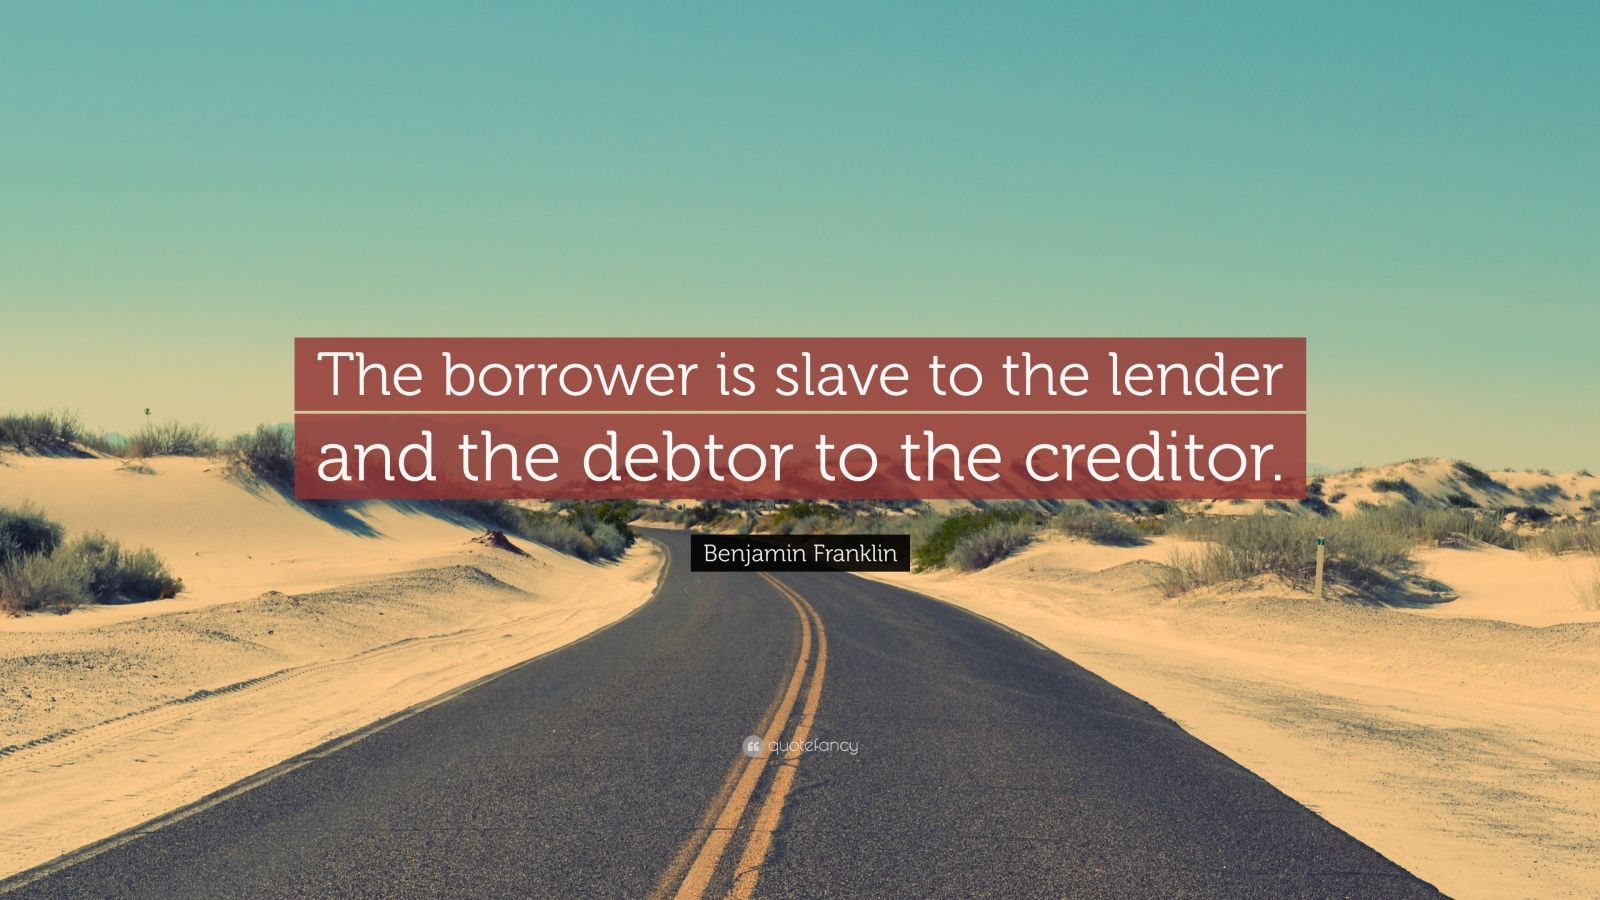 """Benjamin Franklin Quote: """"The borrower is slave to the lender and the debtor to the creditor."""""""